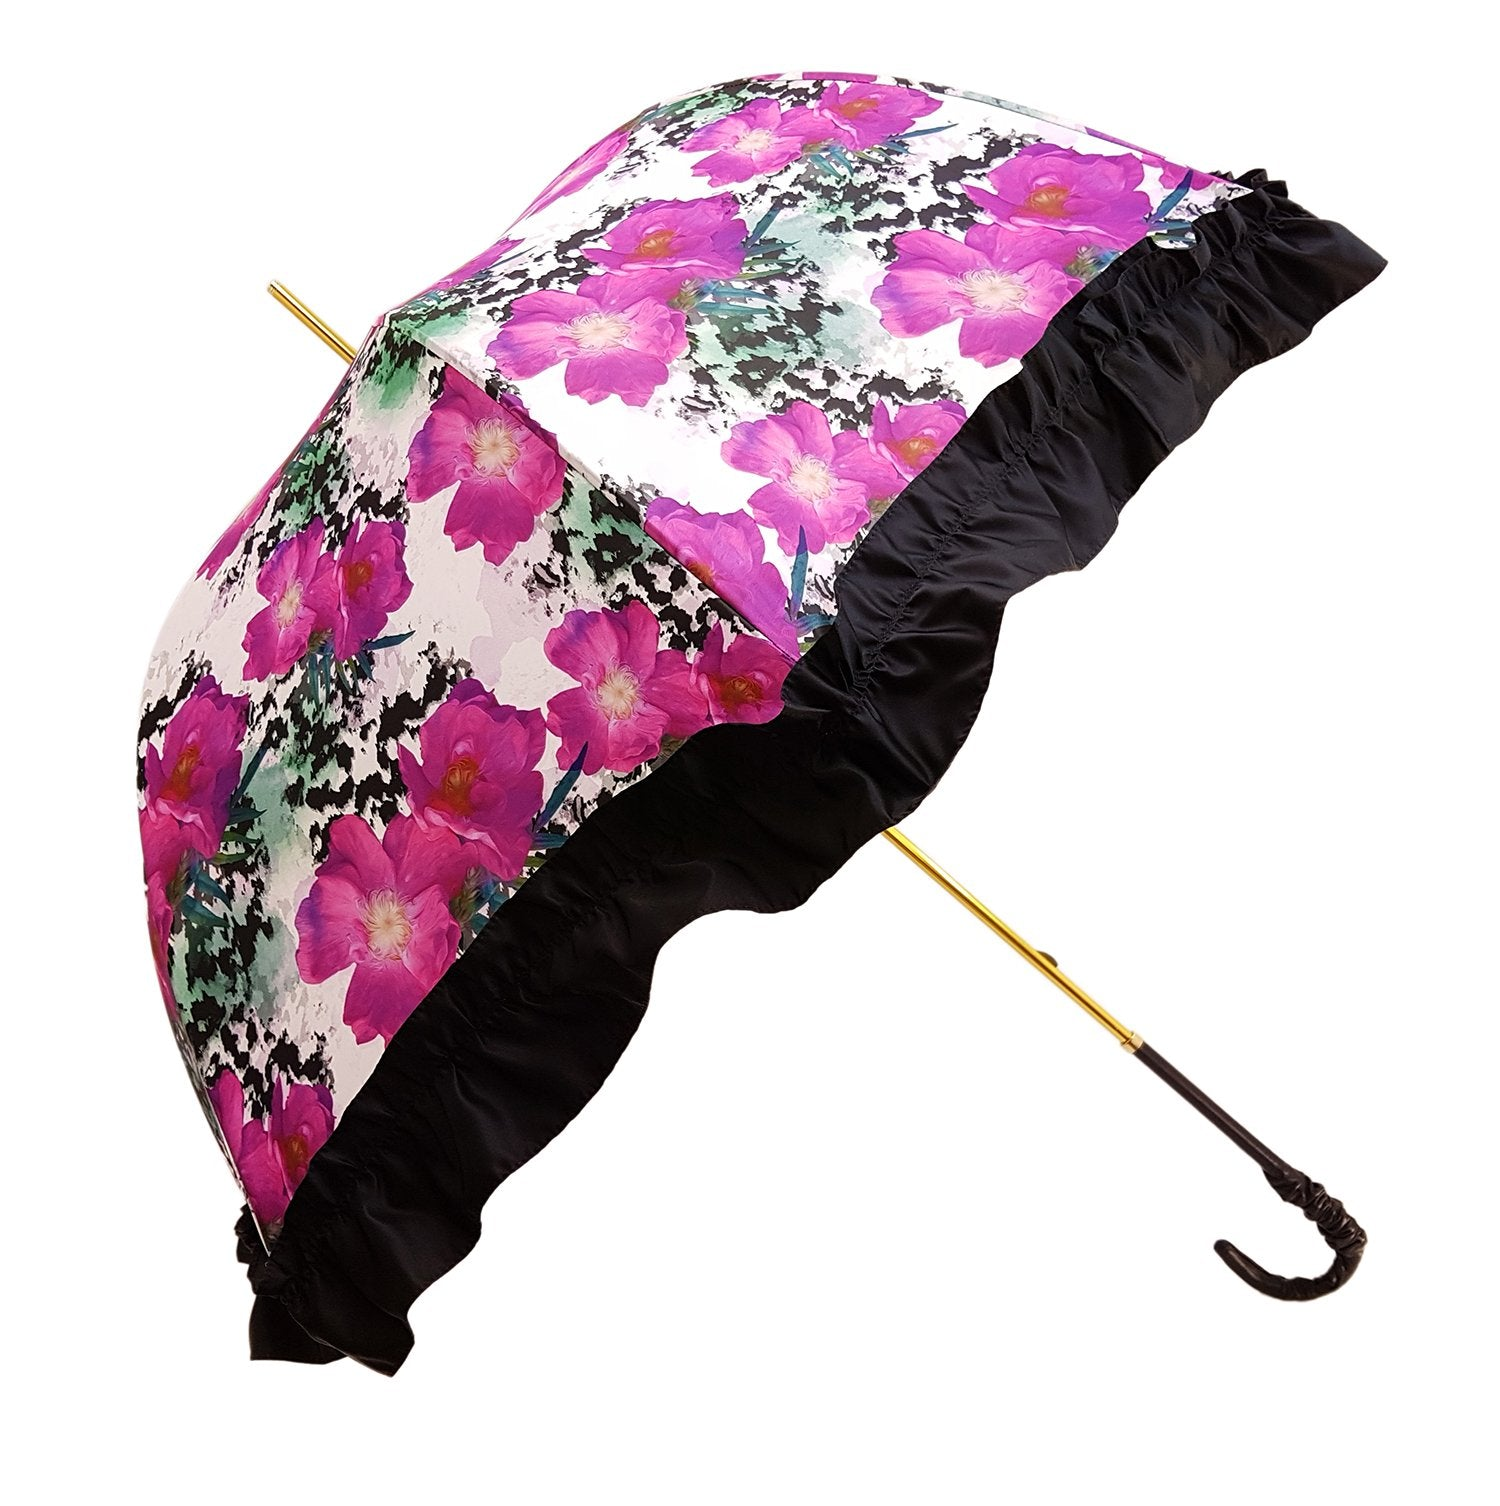 Women's Ruffled Umbrella Studied with a Multicor Pattern - il-marchesato